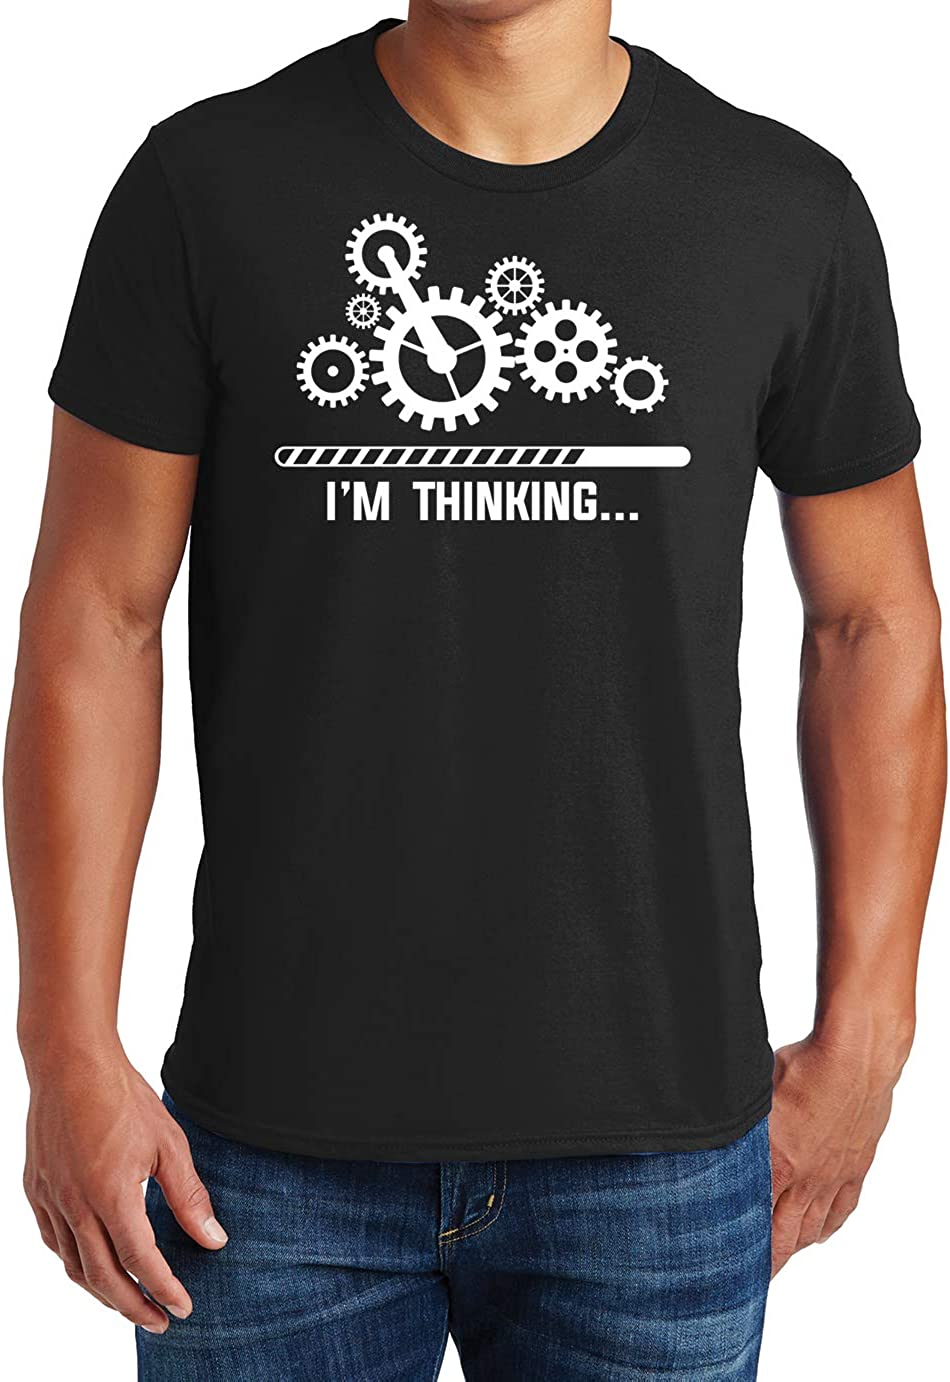 5 popular I'm Thinking Funny Mens T-Shirt Sa All stores are sold Adult Graphic Humor Novelty